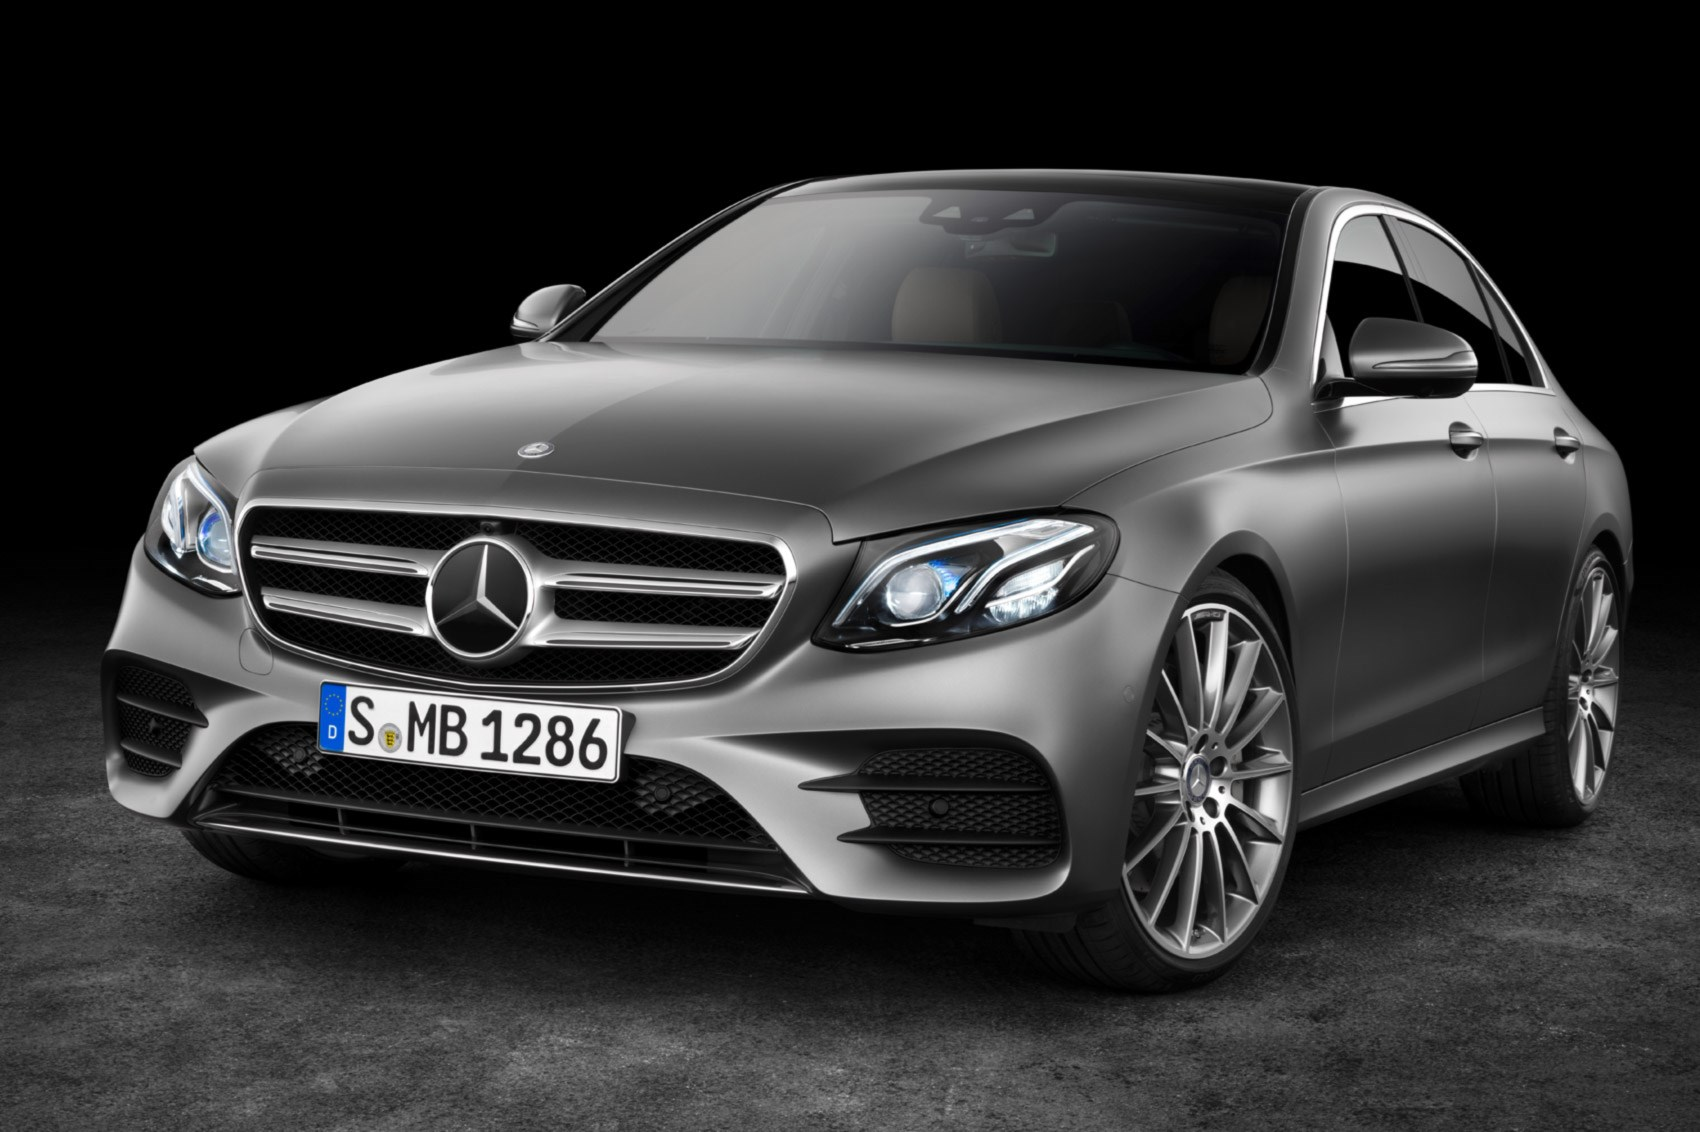 New mercedes benz e class unveiled at 2016 detroit motor - Mercedes car show ...